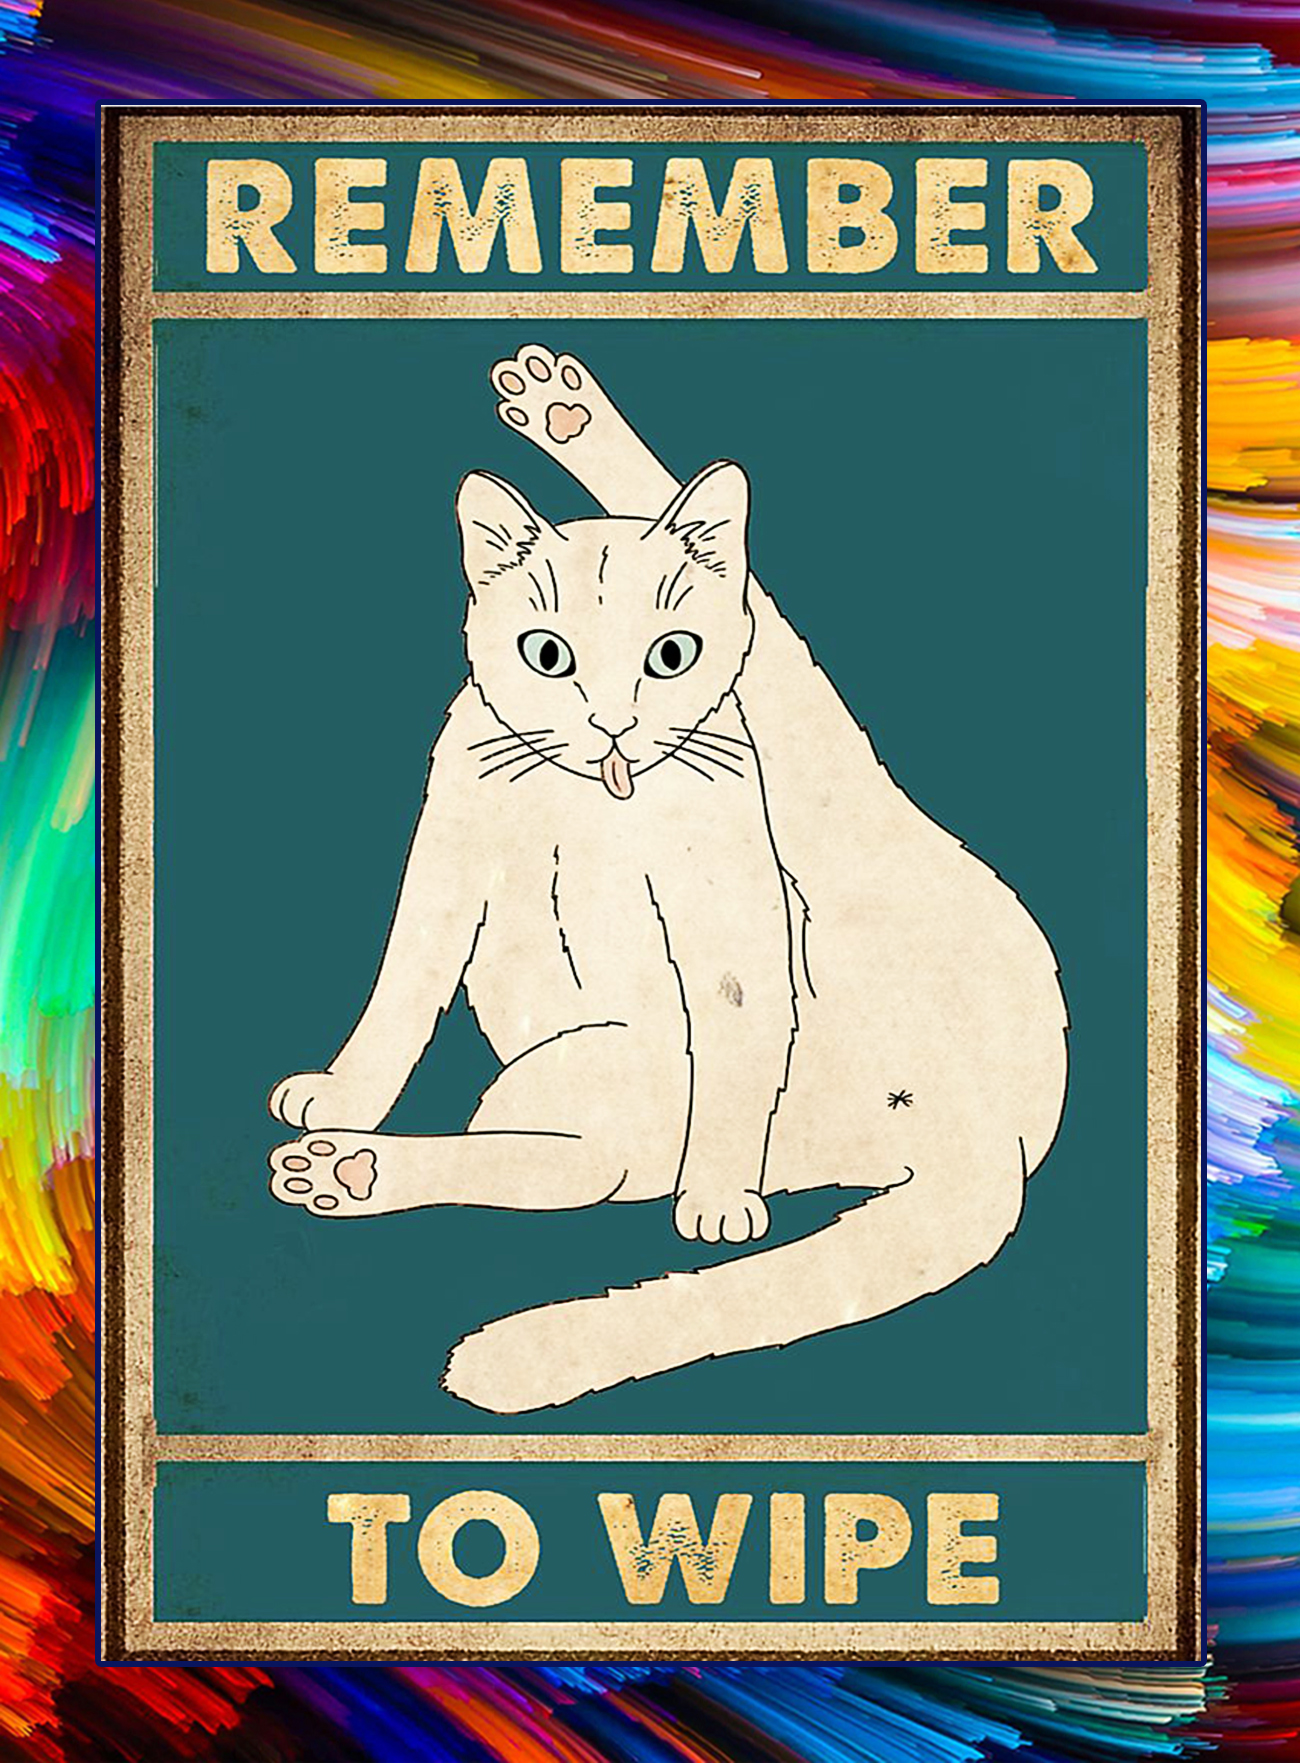 Remember to wipe cat poster - A4